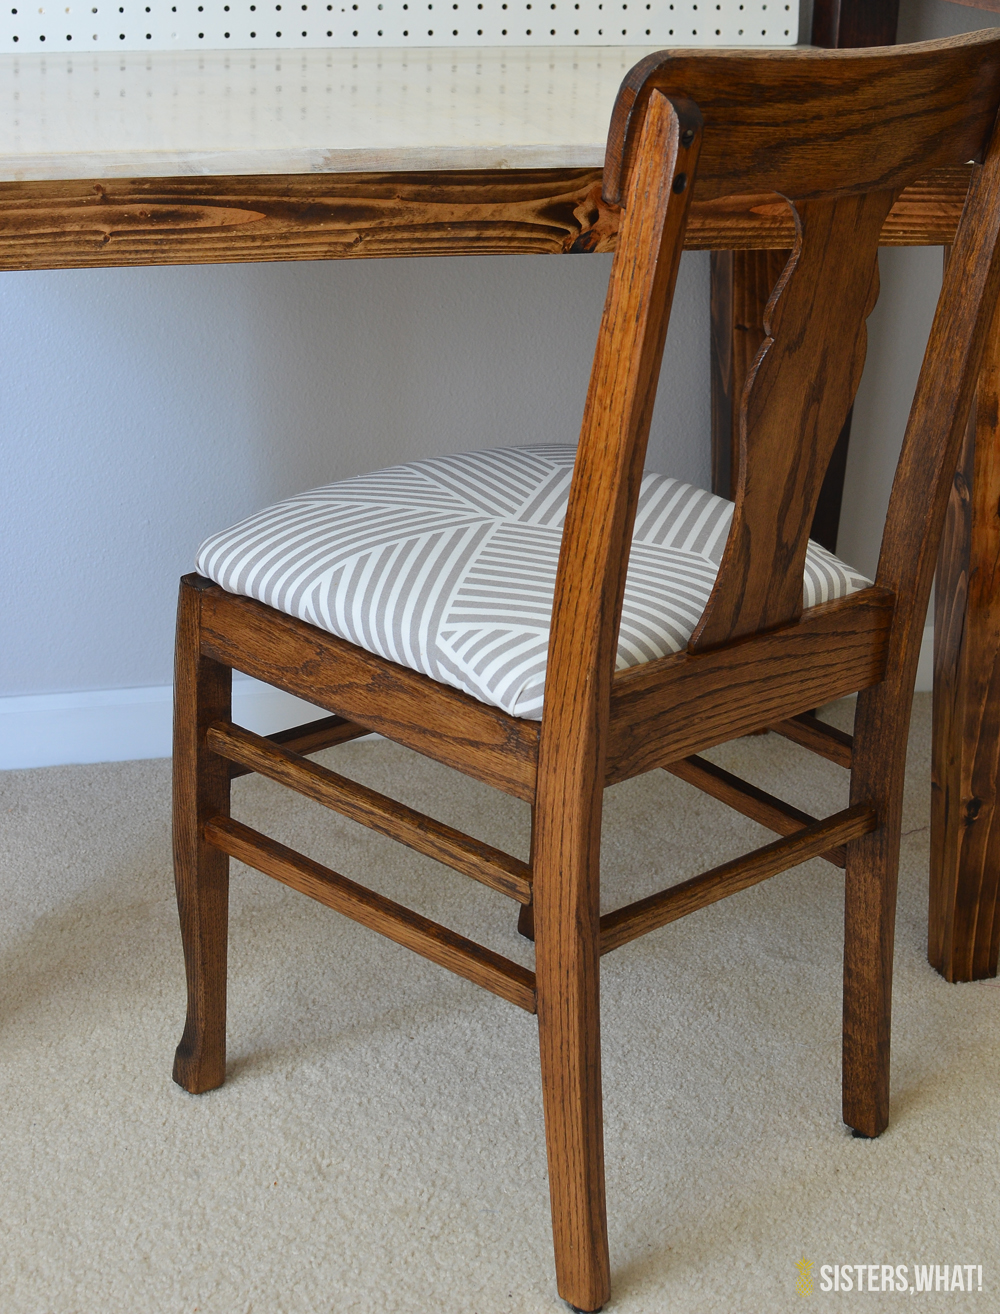 DIY Chair Makeover and refinished from old to new.